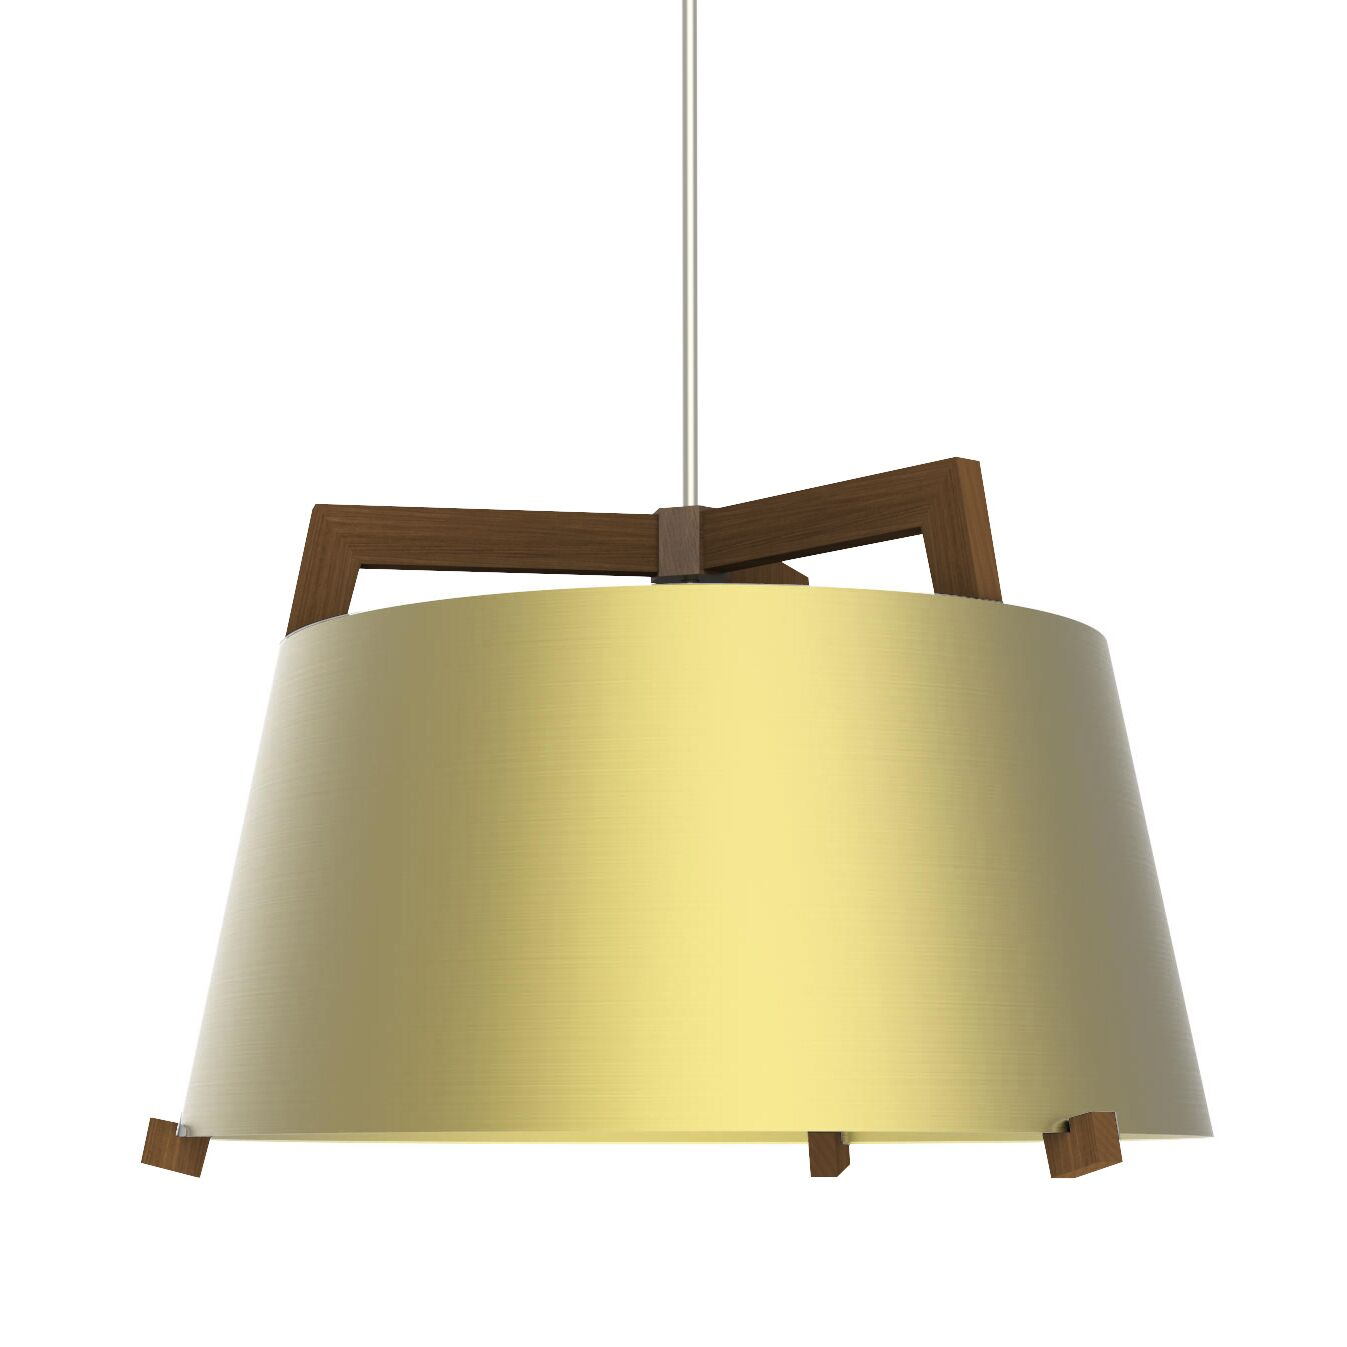 Ignis 1-Light LED Cone Pendant Finish: Oiled Walnut/Brushed Brass, Size: 14.75